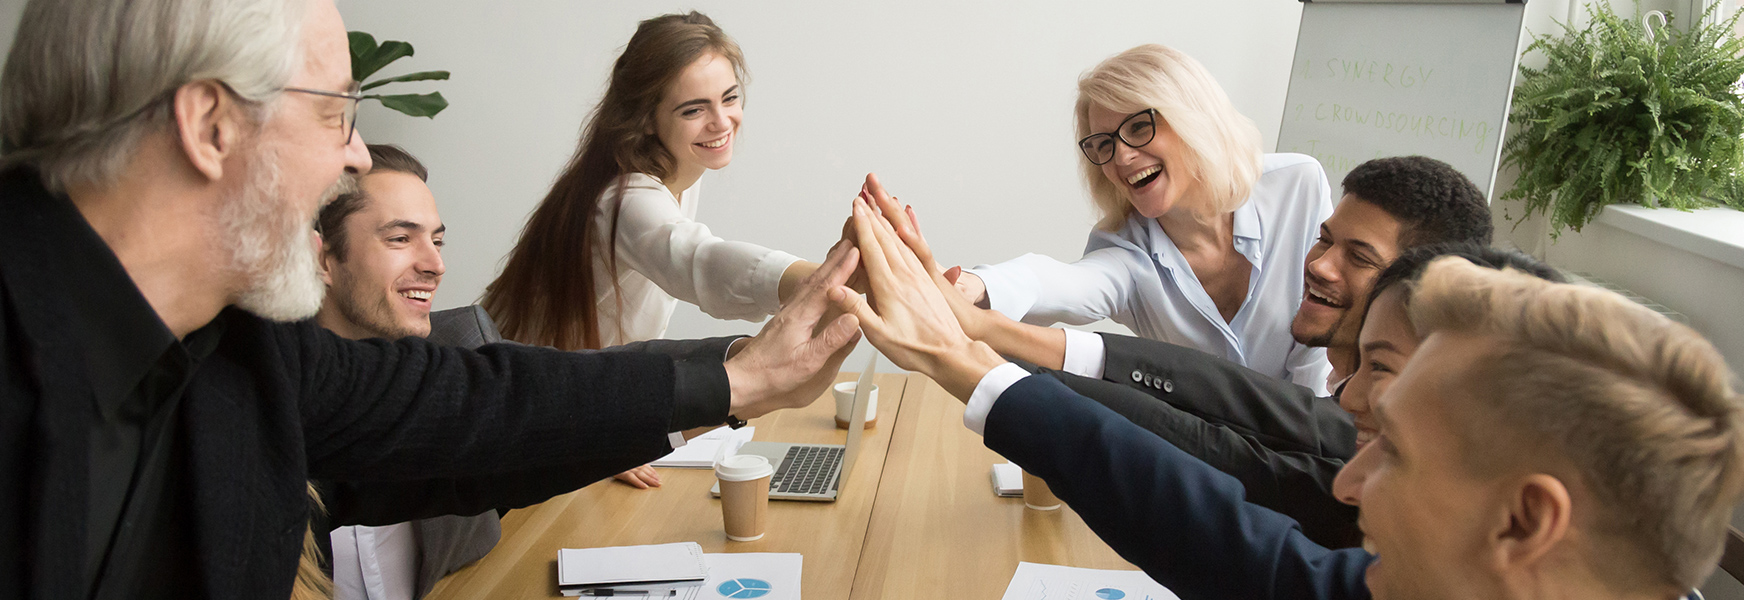 group of co-workers high-fiving